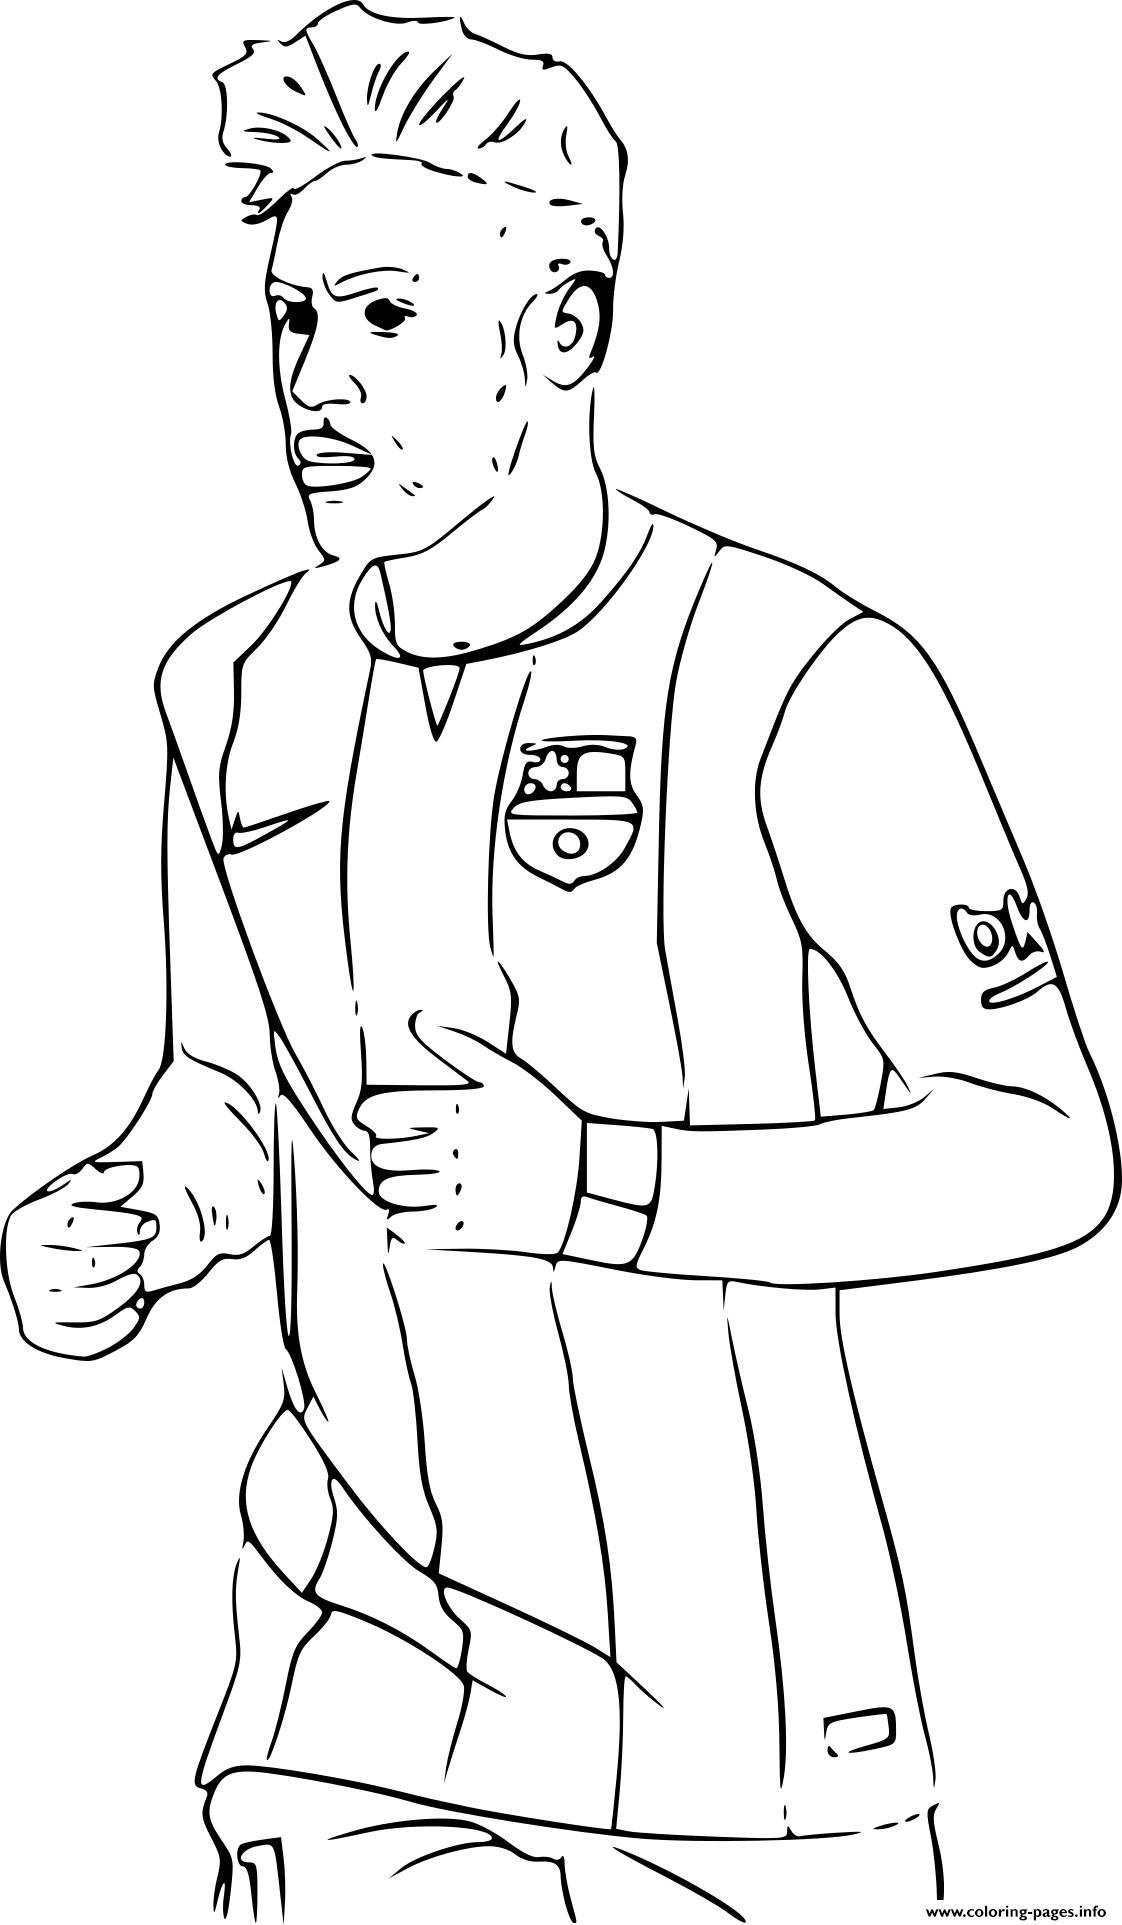 lionel messi coloring page at getdrawings free